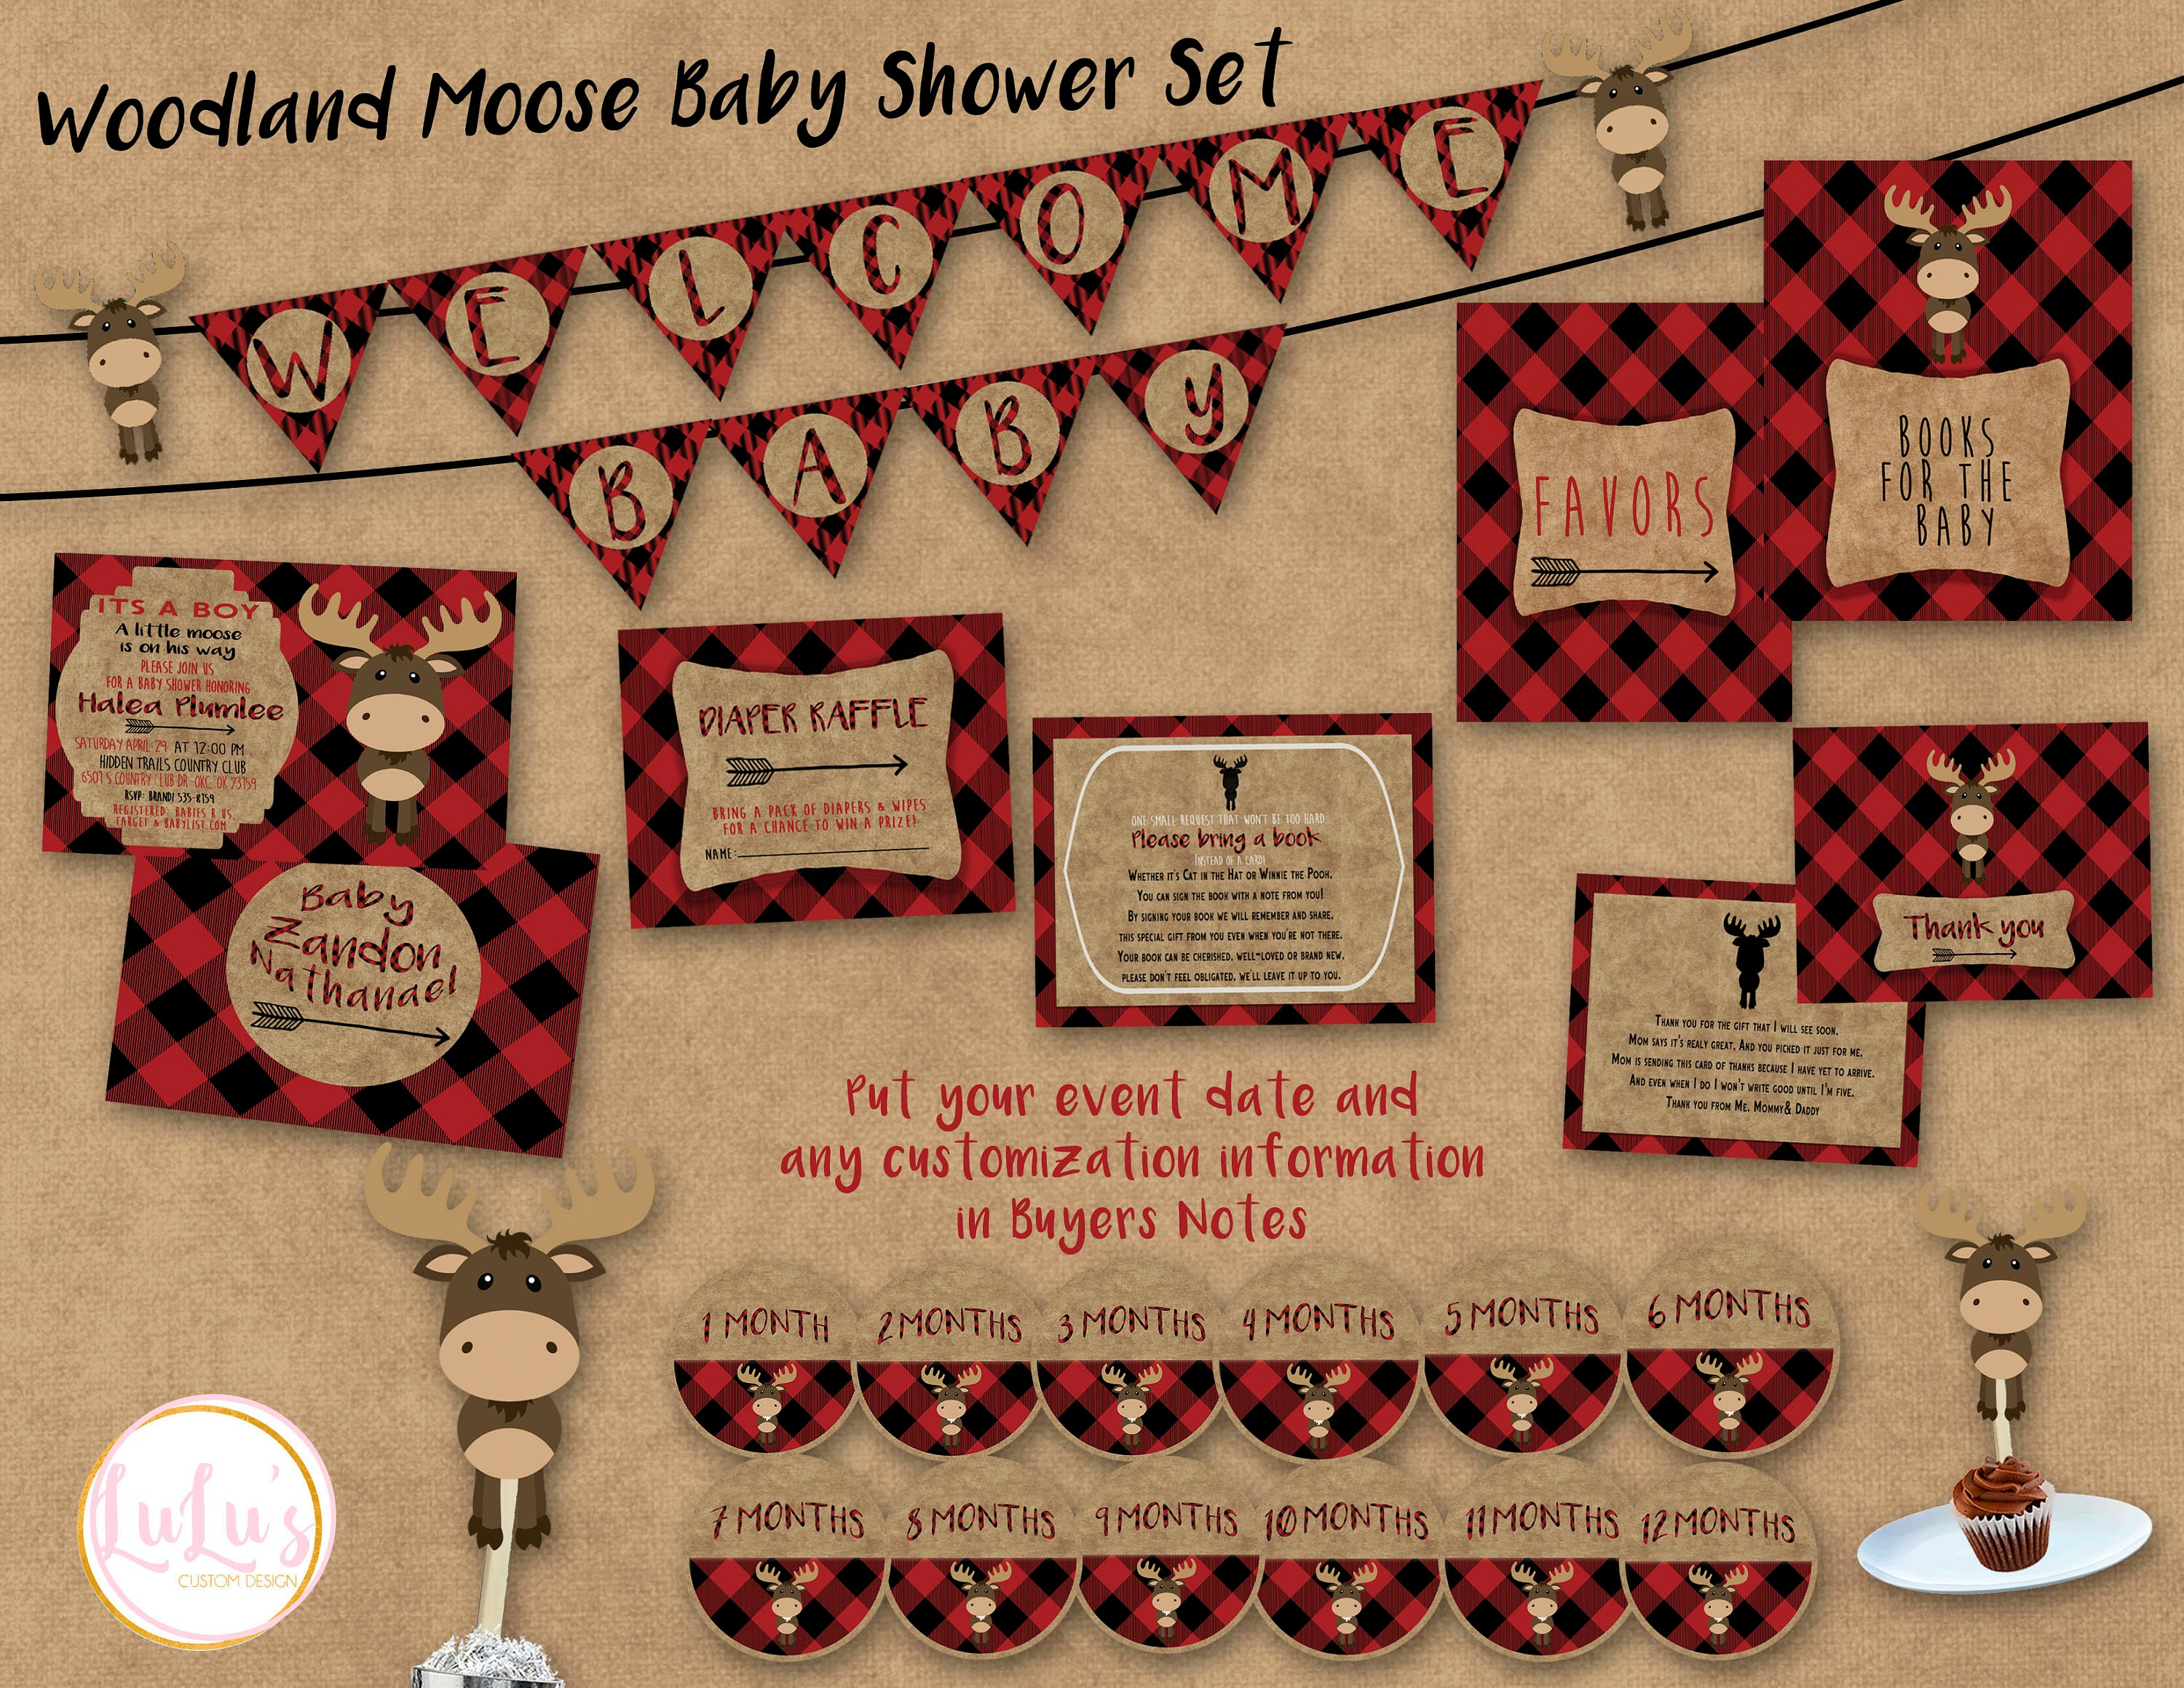 c335859fadcf5 Woodland Moose Baby Shower Party Pack Shower Invitations